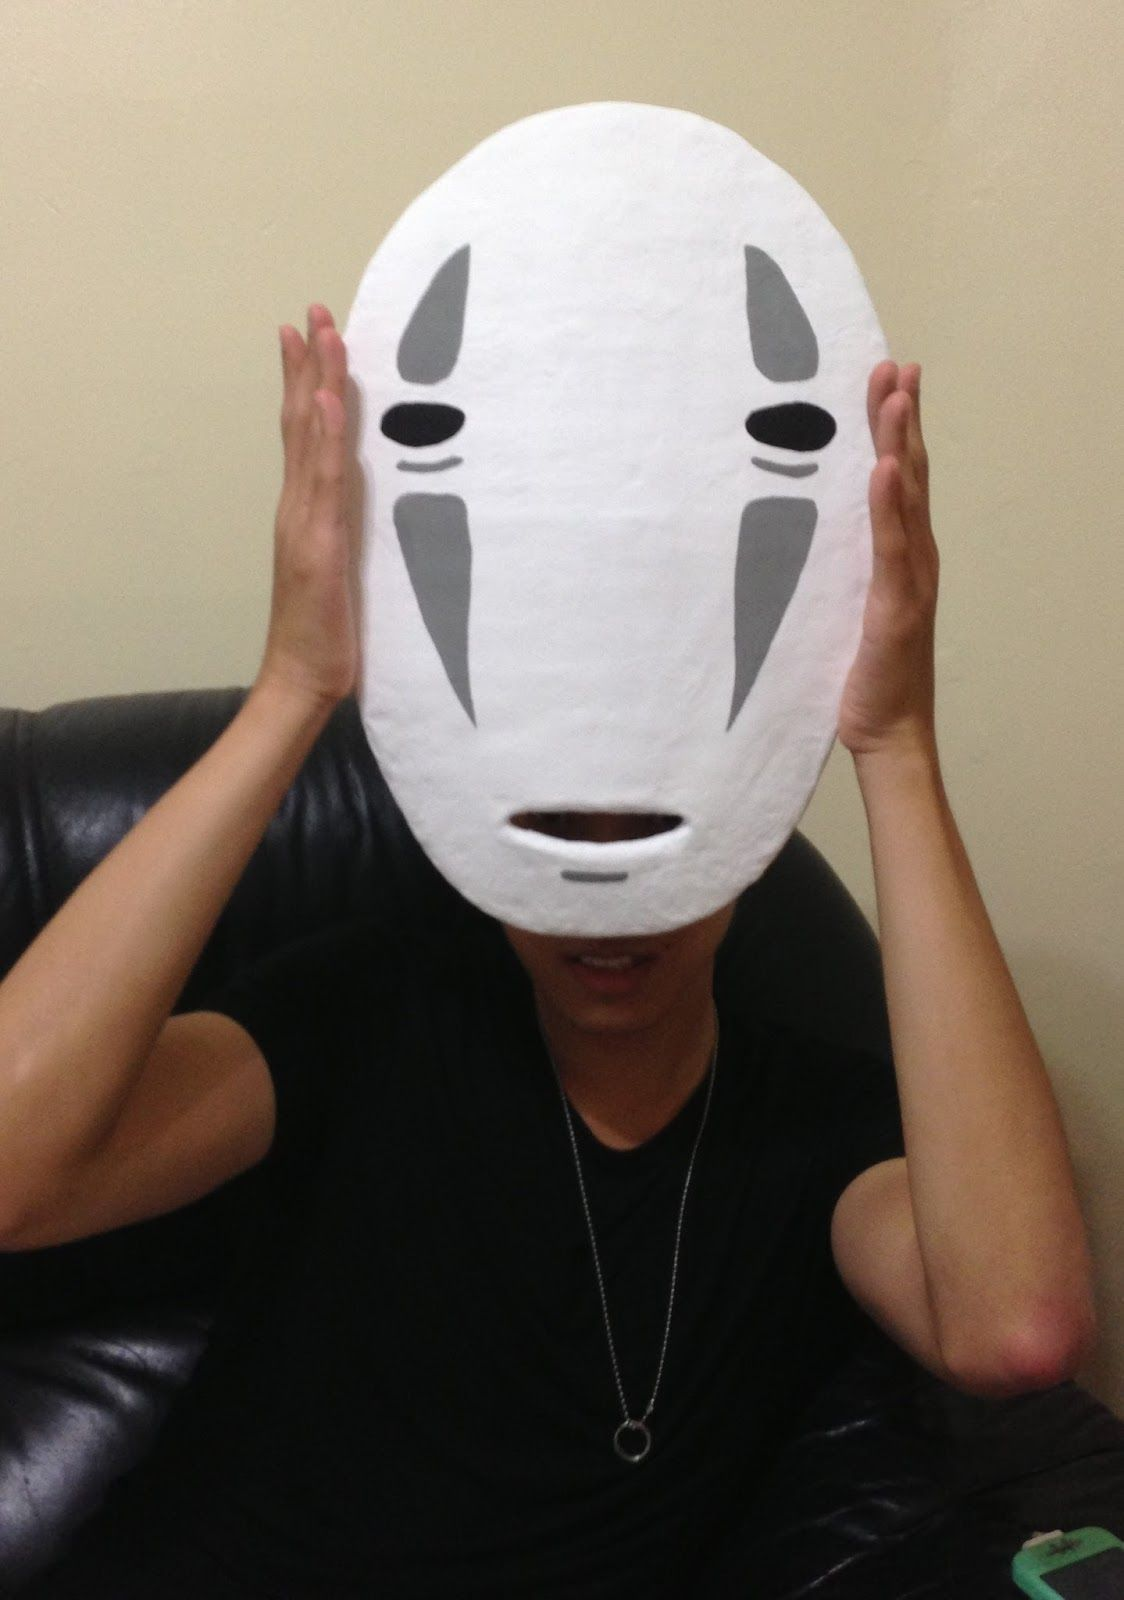 I tried searching for ideas on how to make a No Face mask, but ...